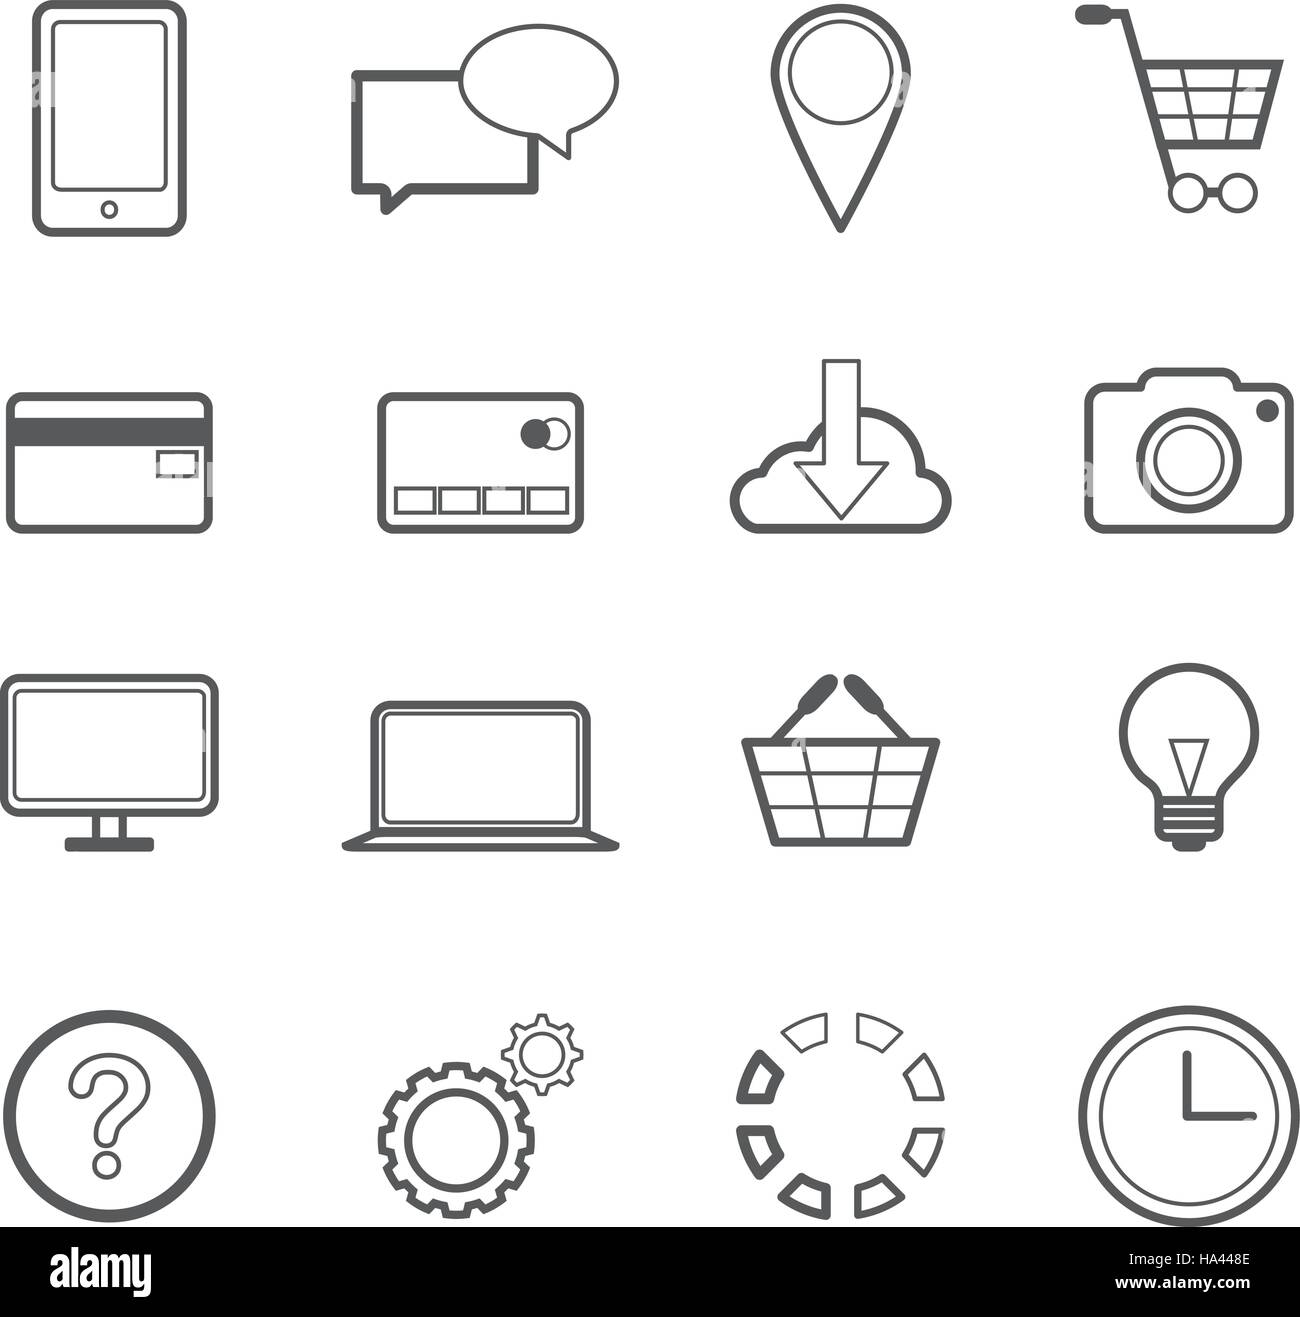 Web Shopping Online Vector Line Icons - Stock Vector